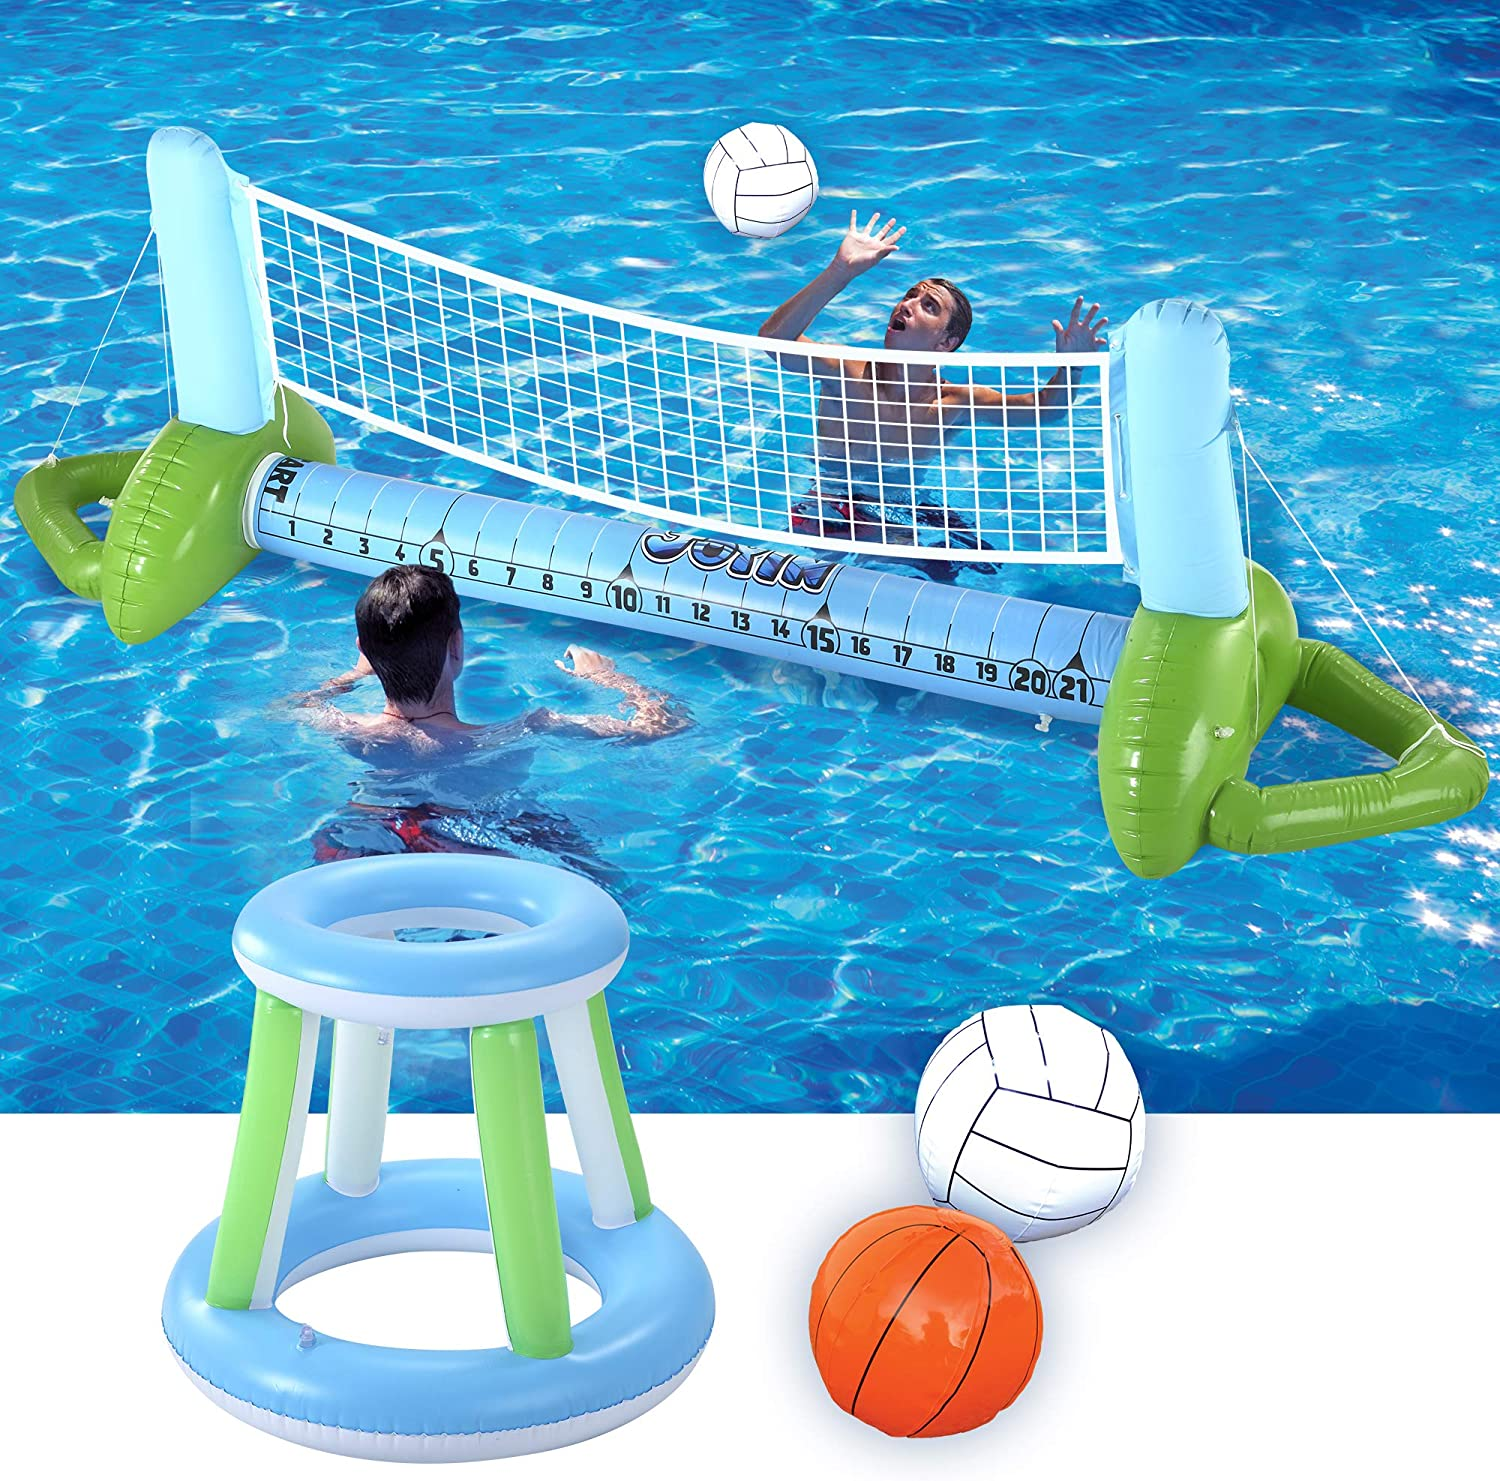 JOYIN Inflatable Pool Volleyball Set, Volleyball Net & Basketball Hoops Pool Float Set, Floating Summer Floaties, Volleyball Court Pool Party Lounge Raft, Inflatable Party Fun Swimming Game Toy: Toys & Games